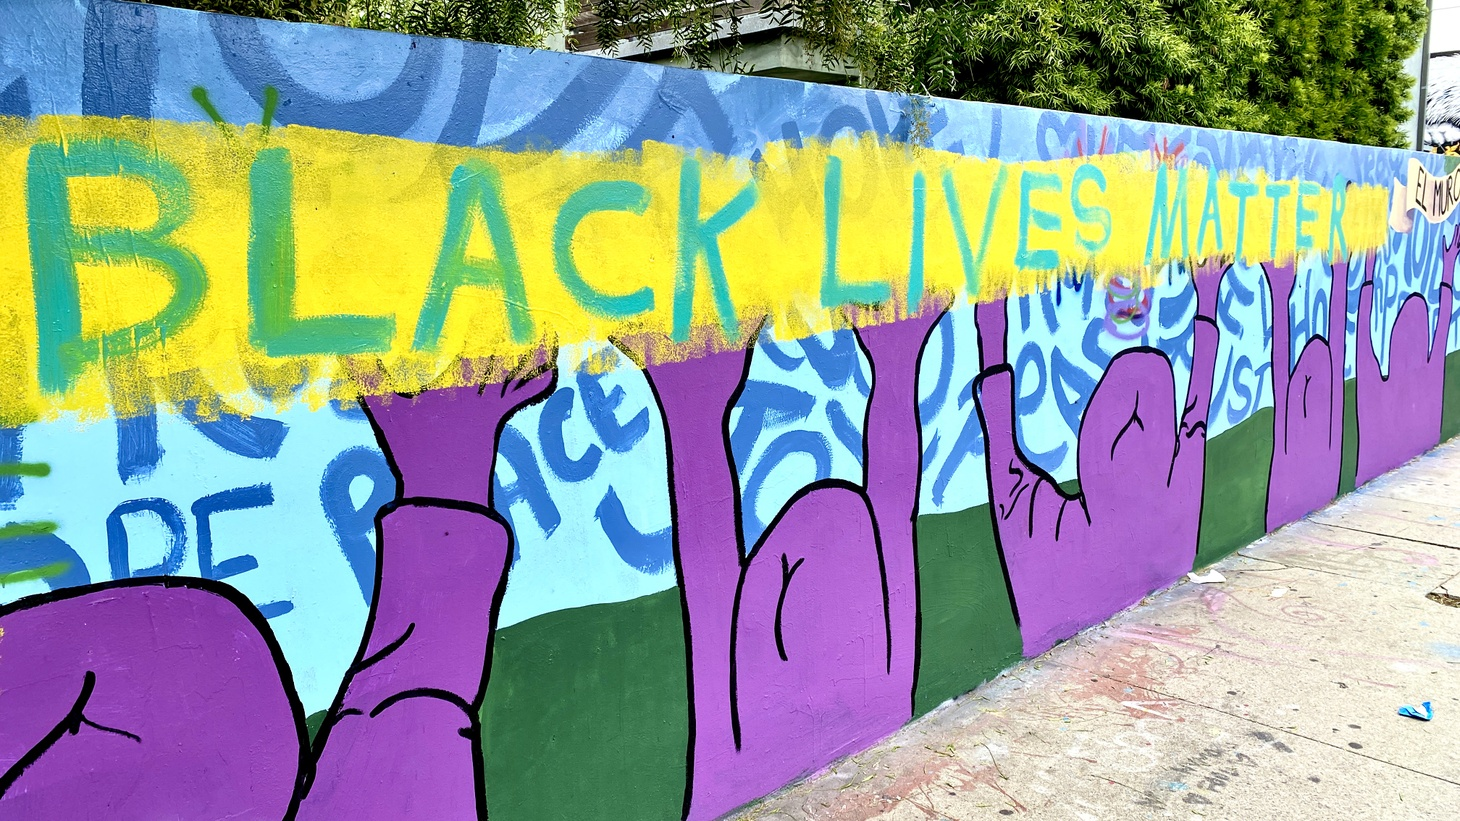 A Black Lives Matter mural in Venice, California. What's next for the movement in 2021?